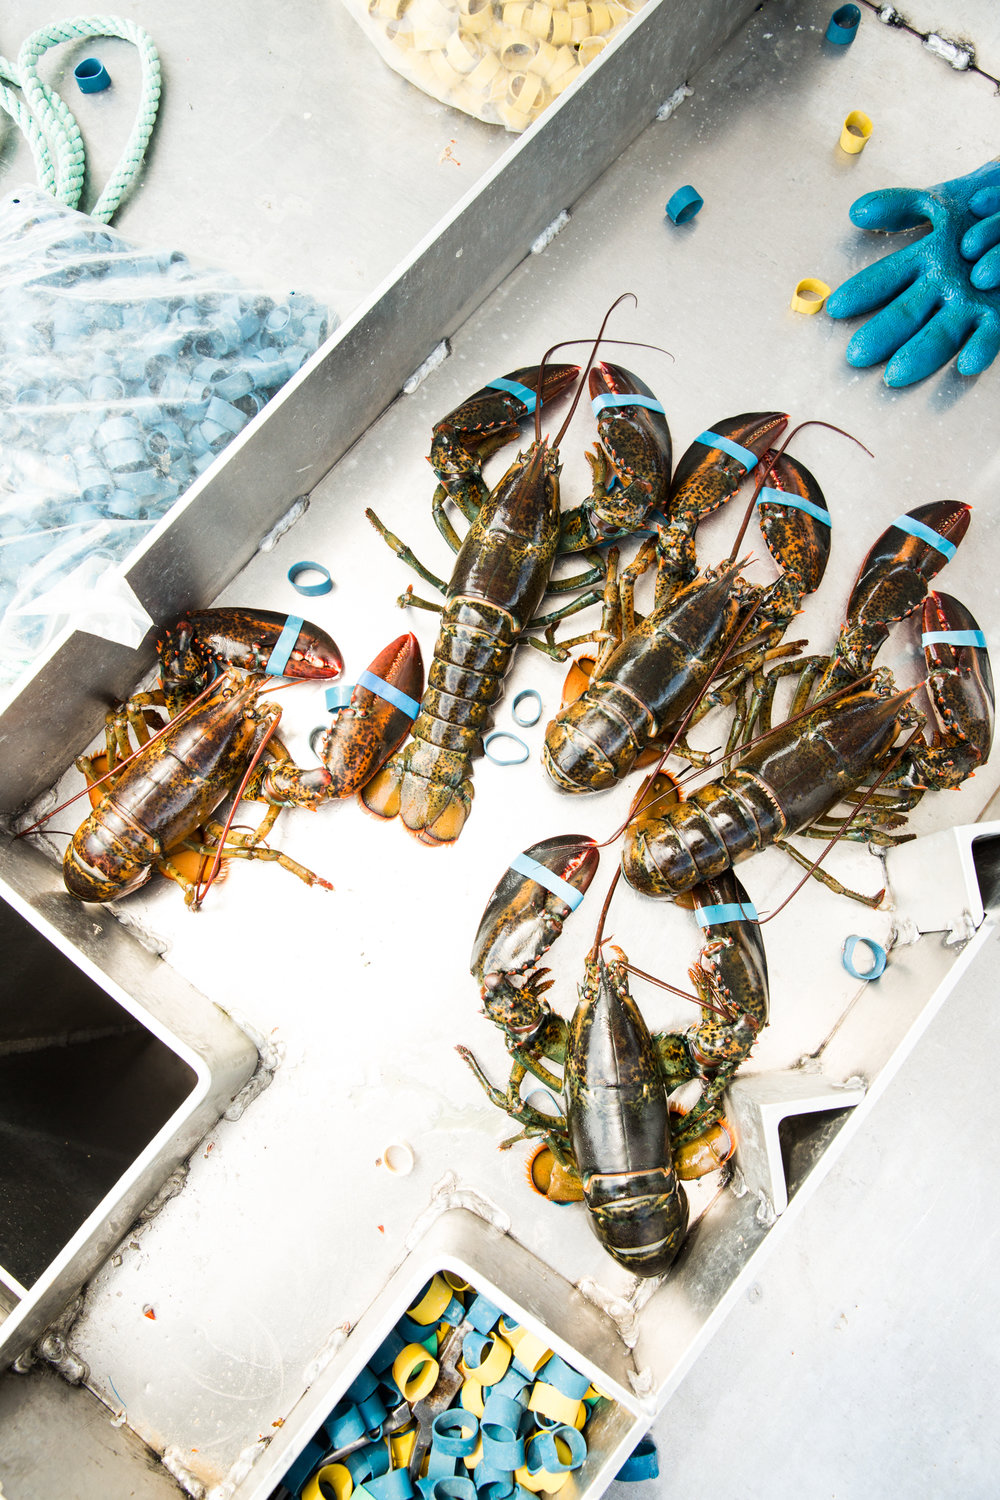 Lobster fishing, Maine.